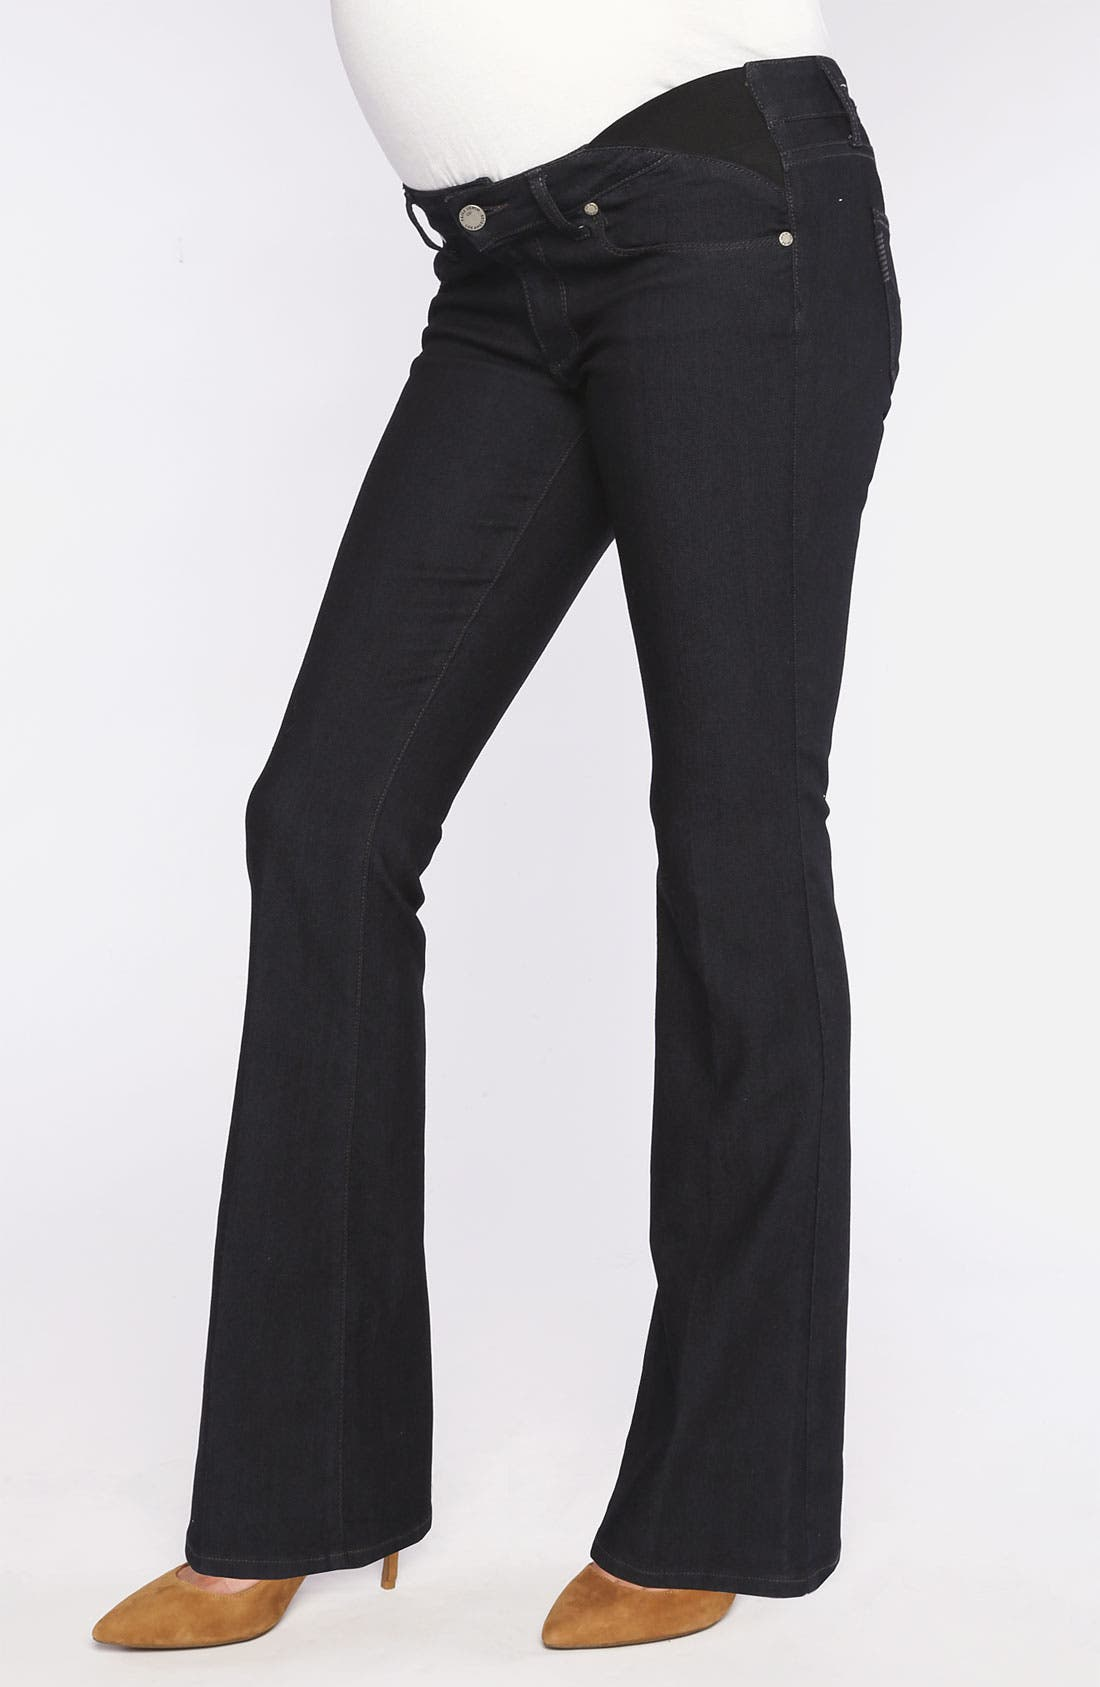 Alternate Image 1 Selected - Paige Denim 'Skyline' Maternity Bootcut Jeans (Petite) (Twilight)